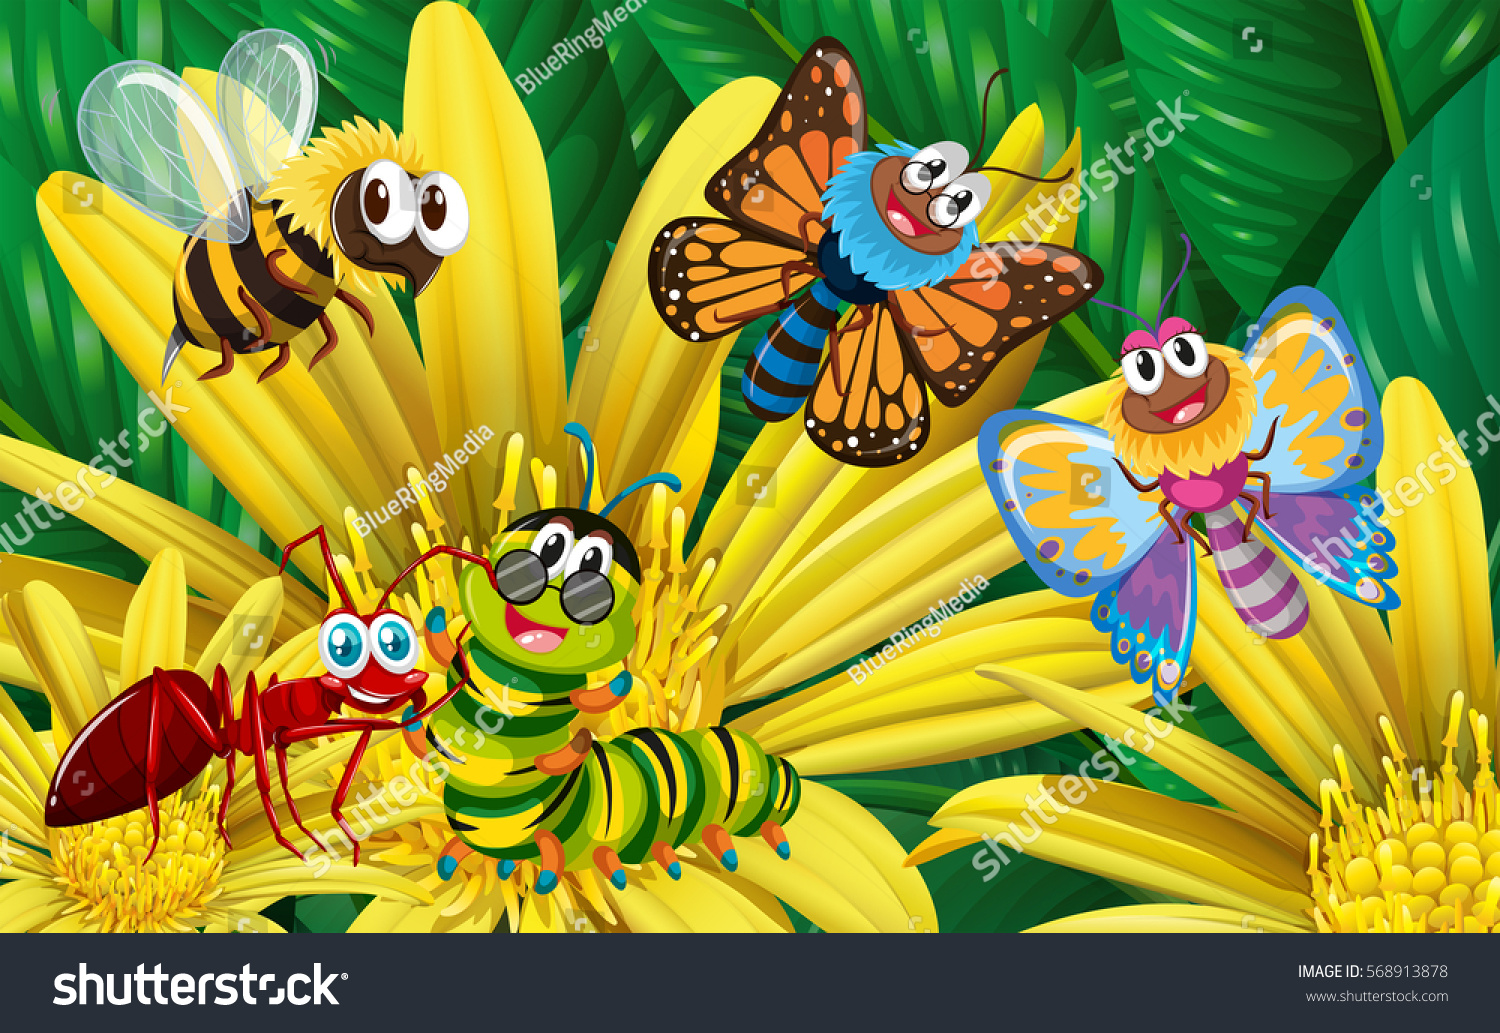 Different types insects on yellow flower stock vector hd royalty different types of insects on yellow flower illustration mightylinksfo